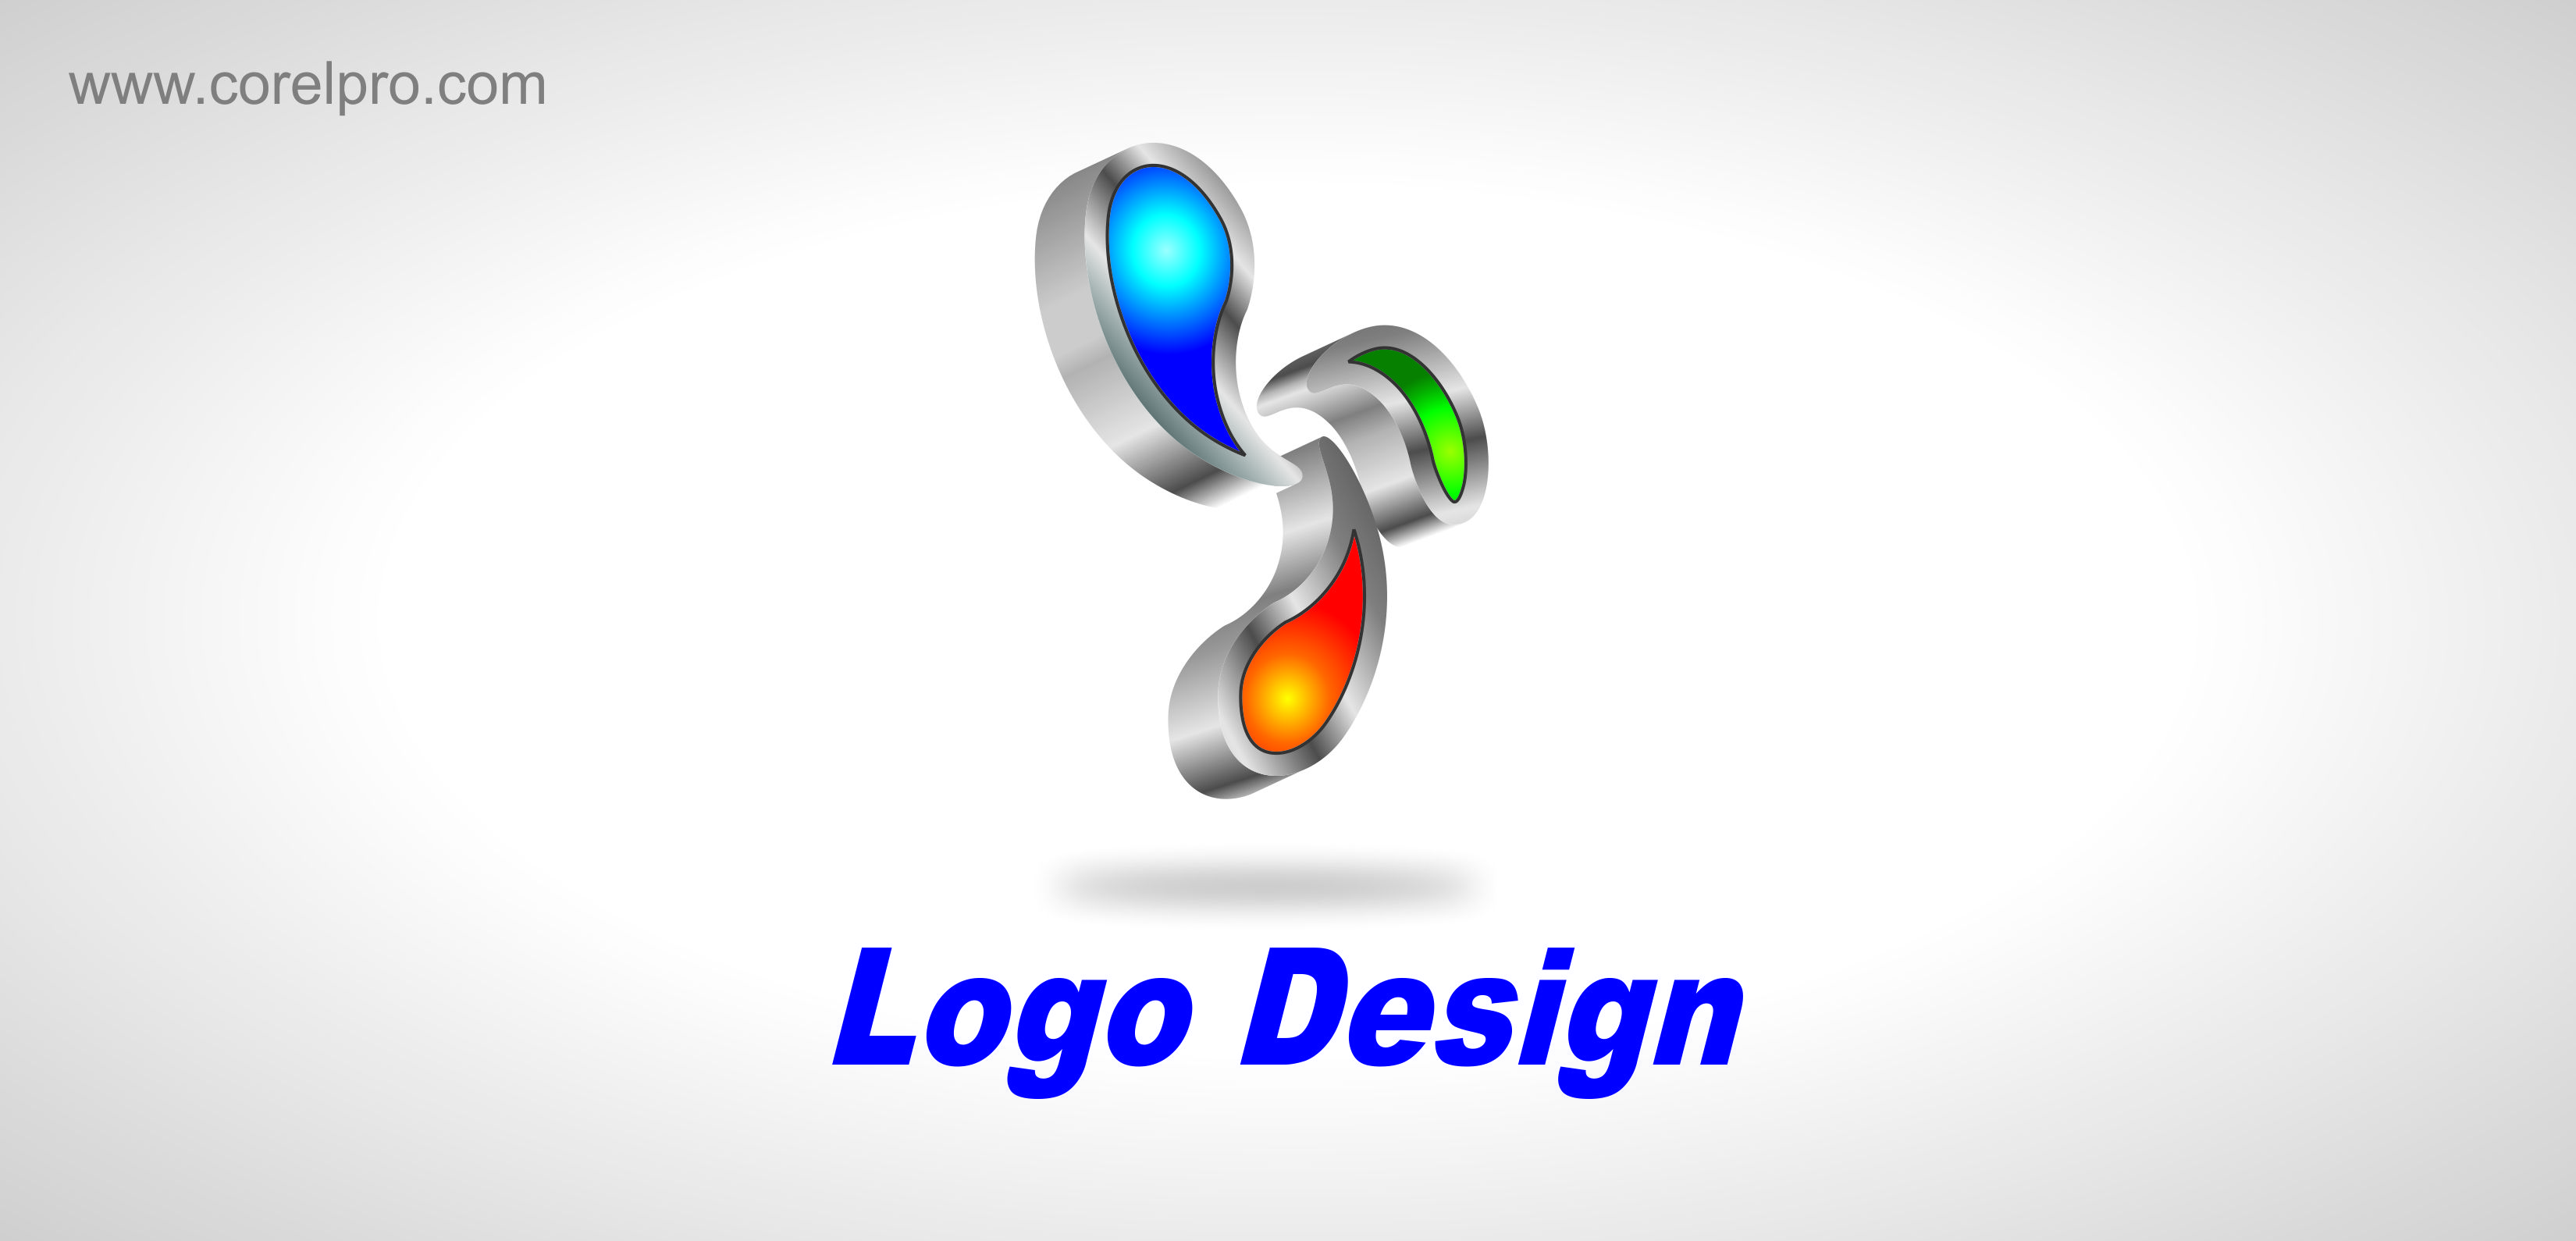 best logo design ideas 39 in coreldraw tutorial with free source file download logo design ideas video tutorials for how to make logo elements